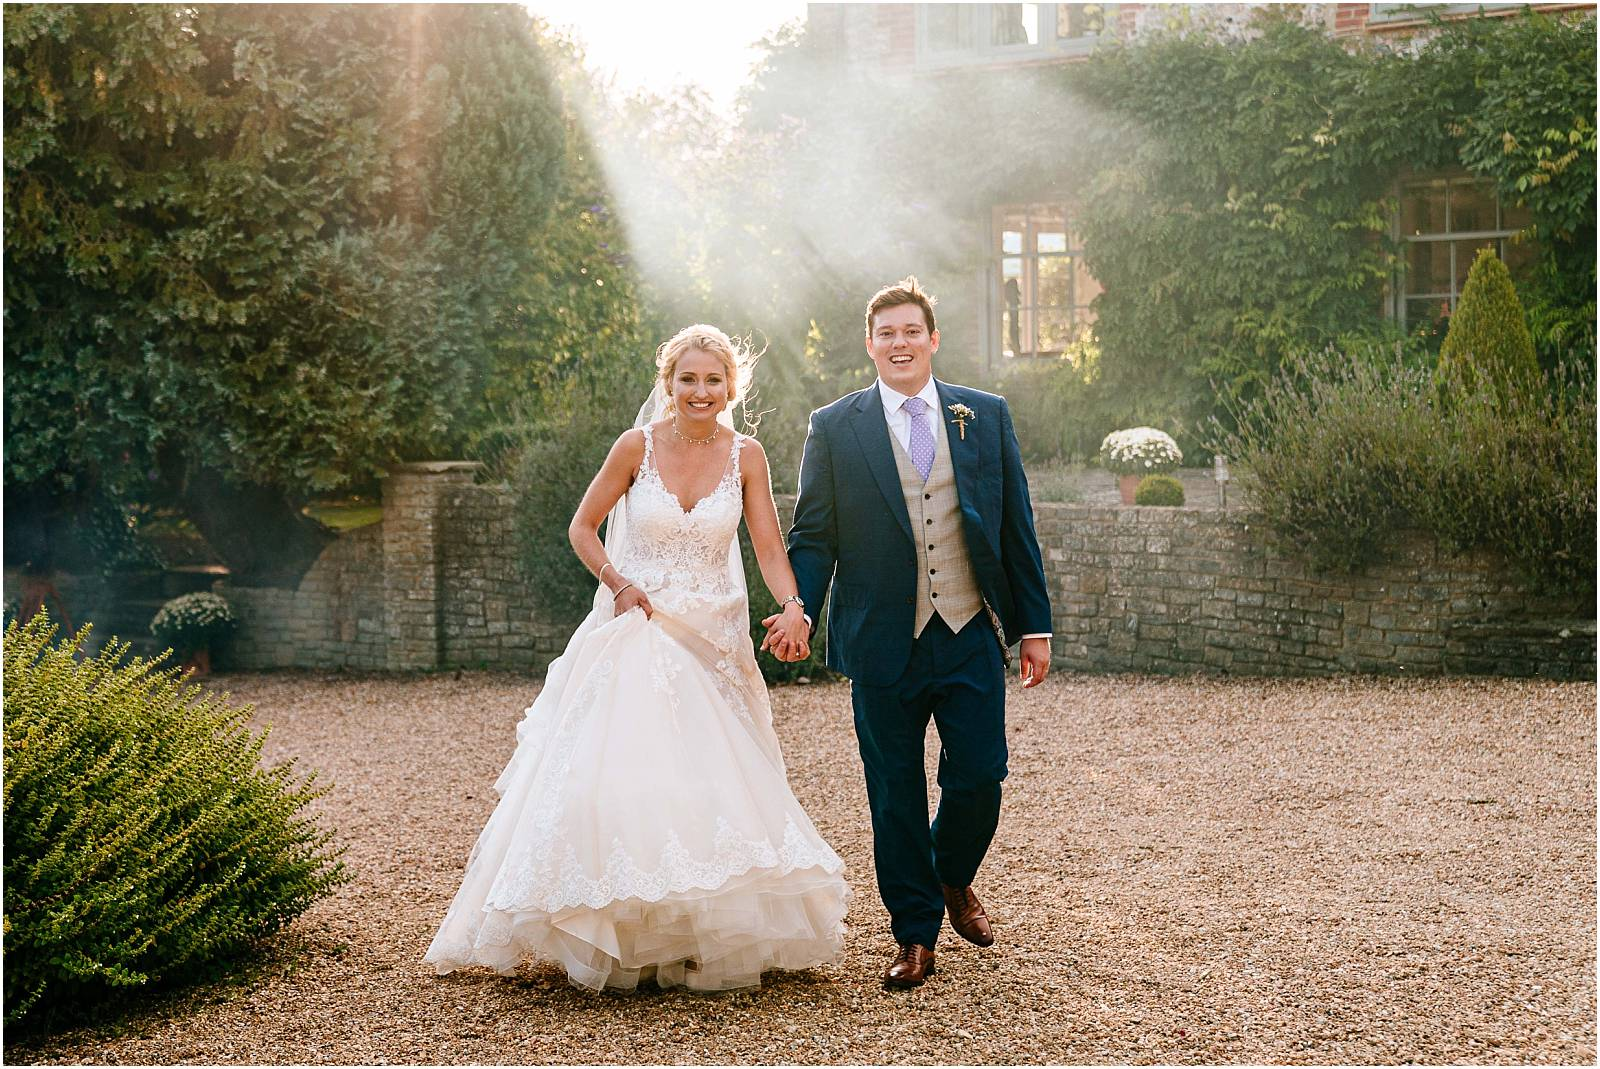 Hampshire Wedding Photographer – Megan & Sam's Marquee Wedding